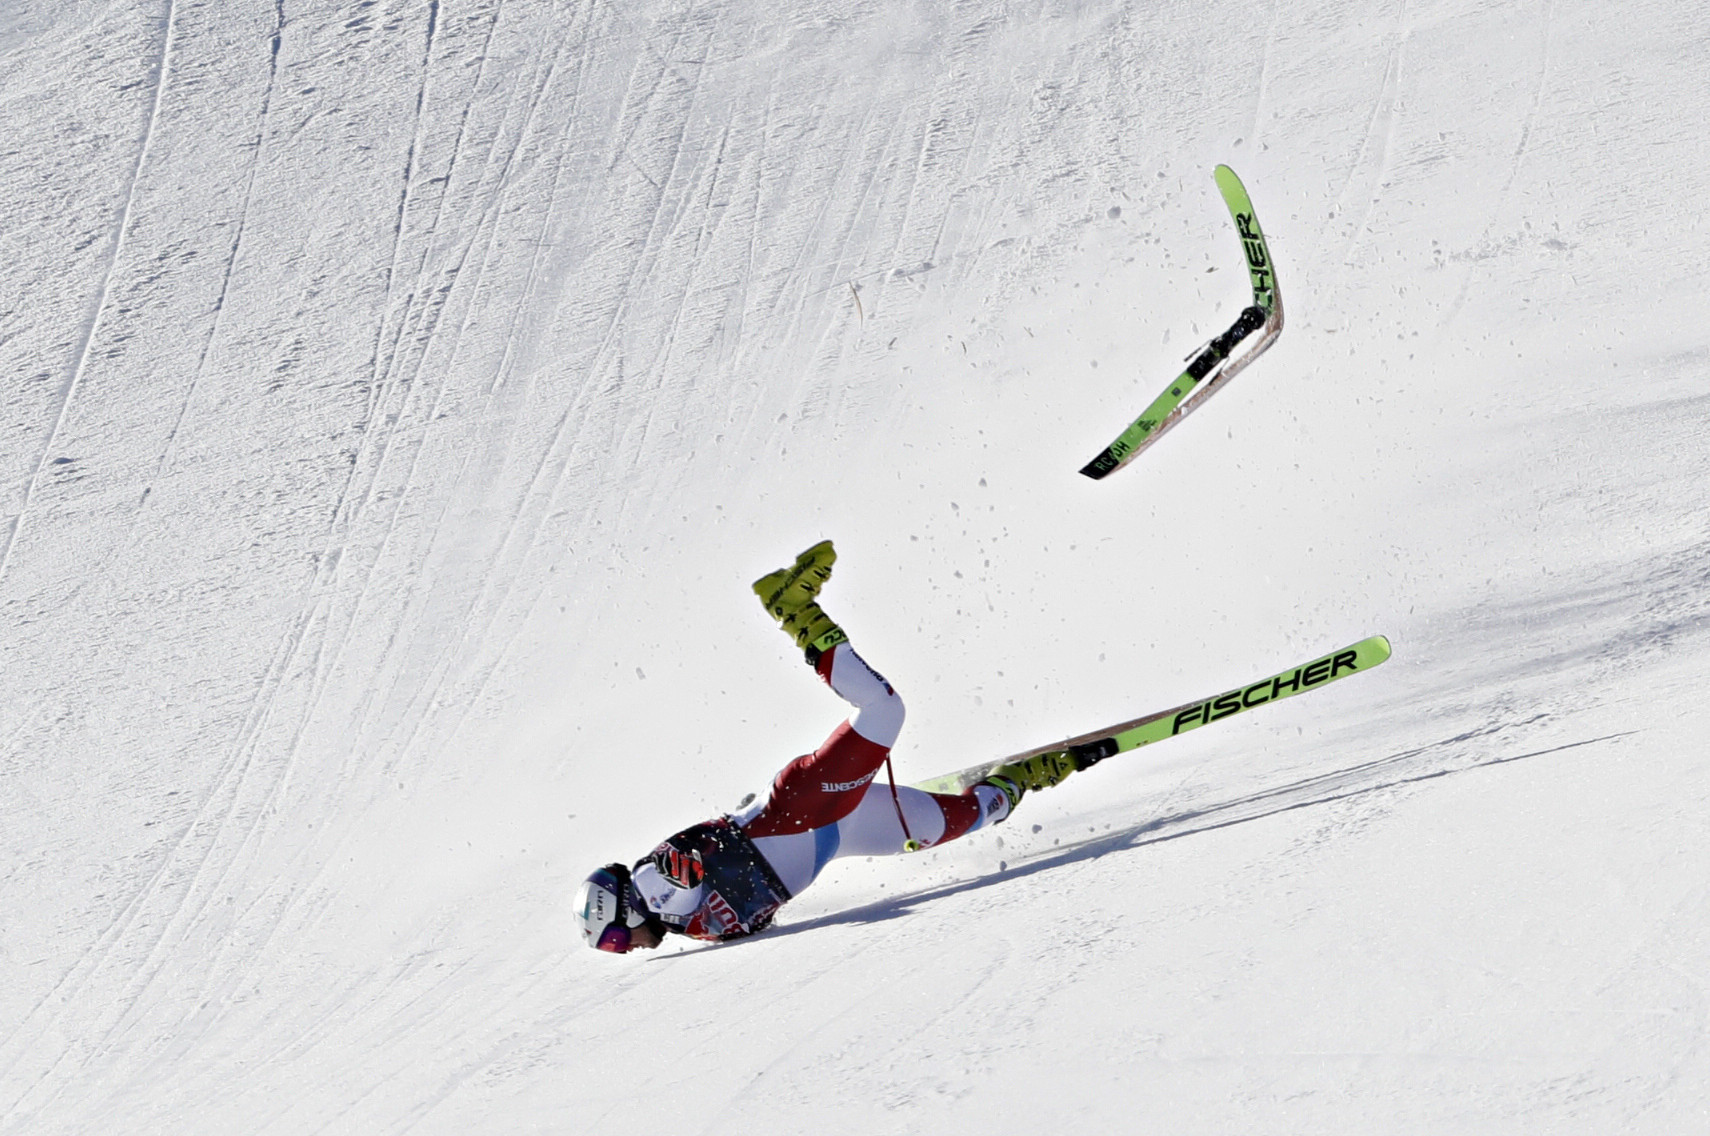 Switzerland's Urs Kryenbuhl was airlifted to hospital following a crash at Kitzbühel  ©Getty Images